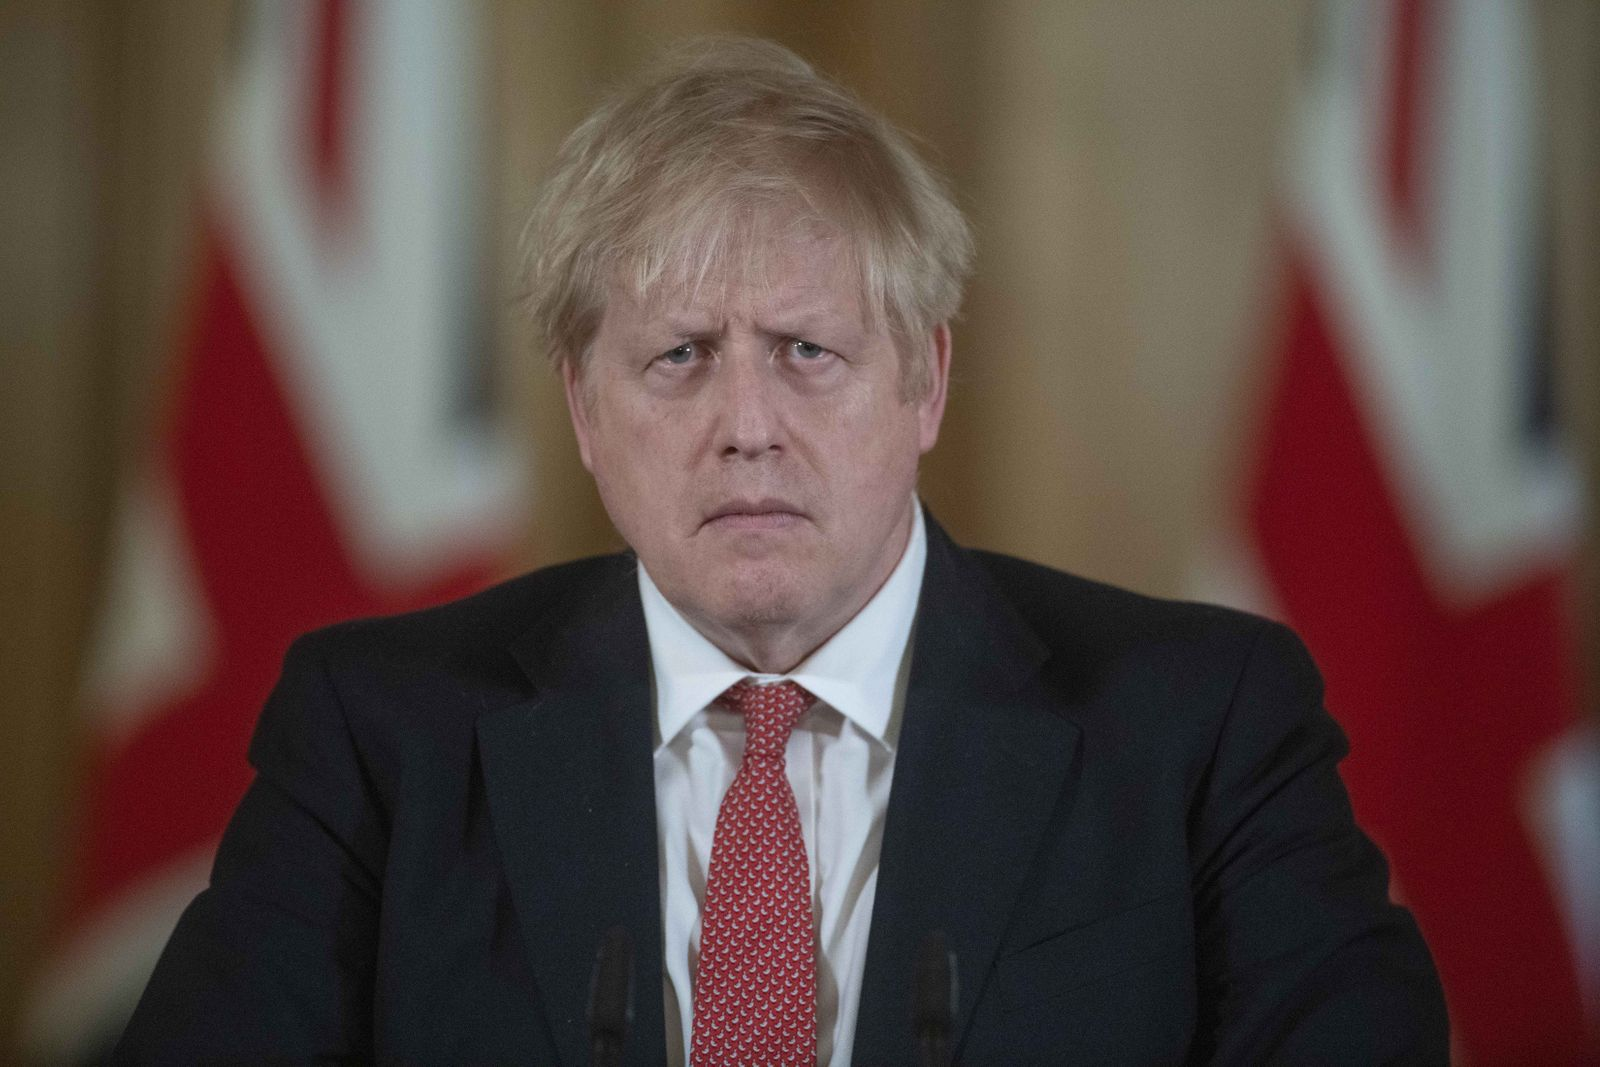 UK Prime Minister Boris Johnson Tests Positive For Coronavirus Covid-19 Prime Minister's Daily Press Conference Announces Bar Closures And Salary Aid